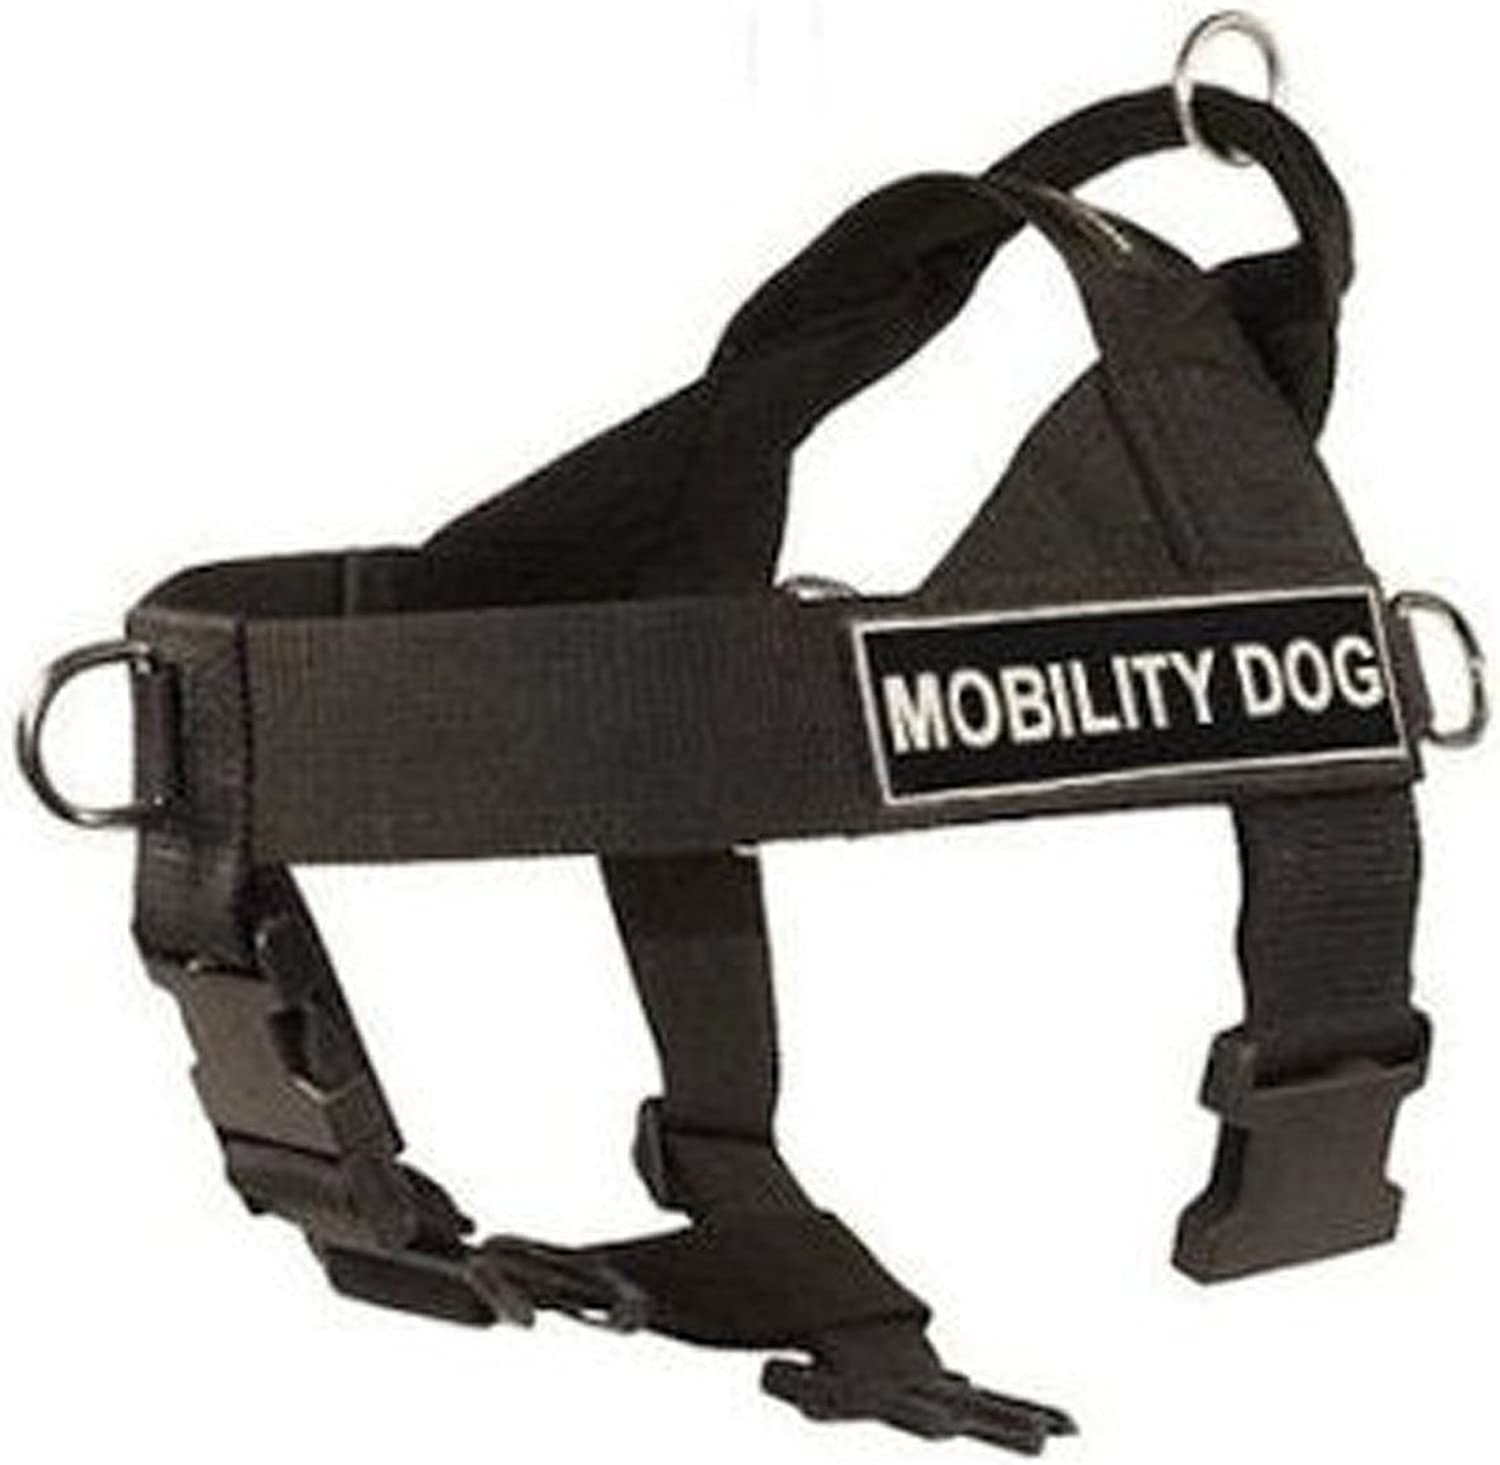 DT Universal No Pull Dog Harness, Mobility Dog, Black, XLarge  Fits Girth Size  91cm to 119cm